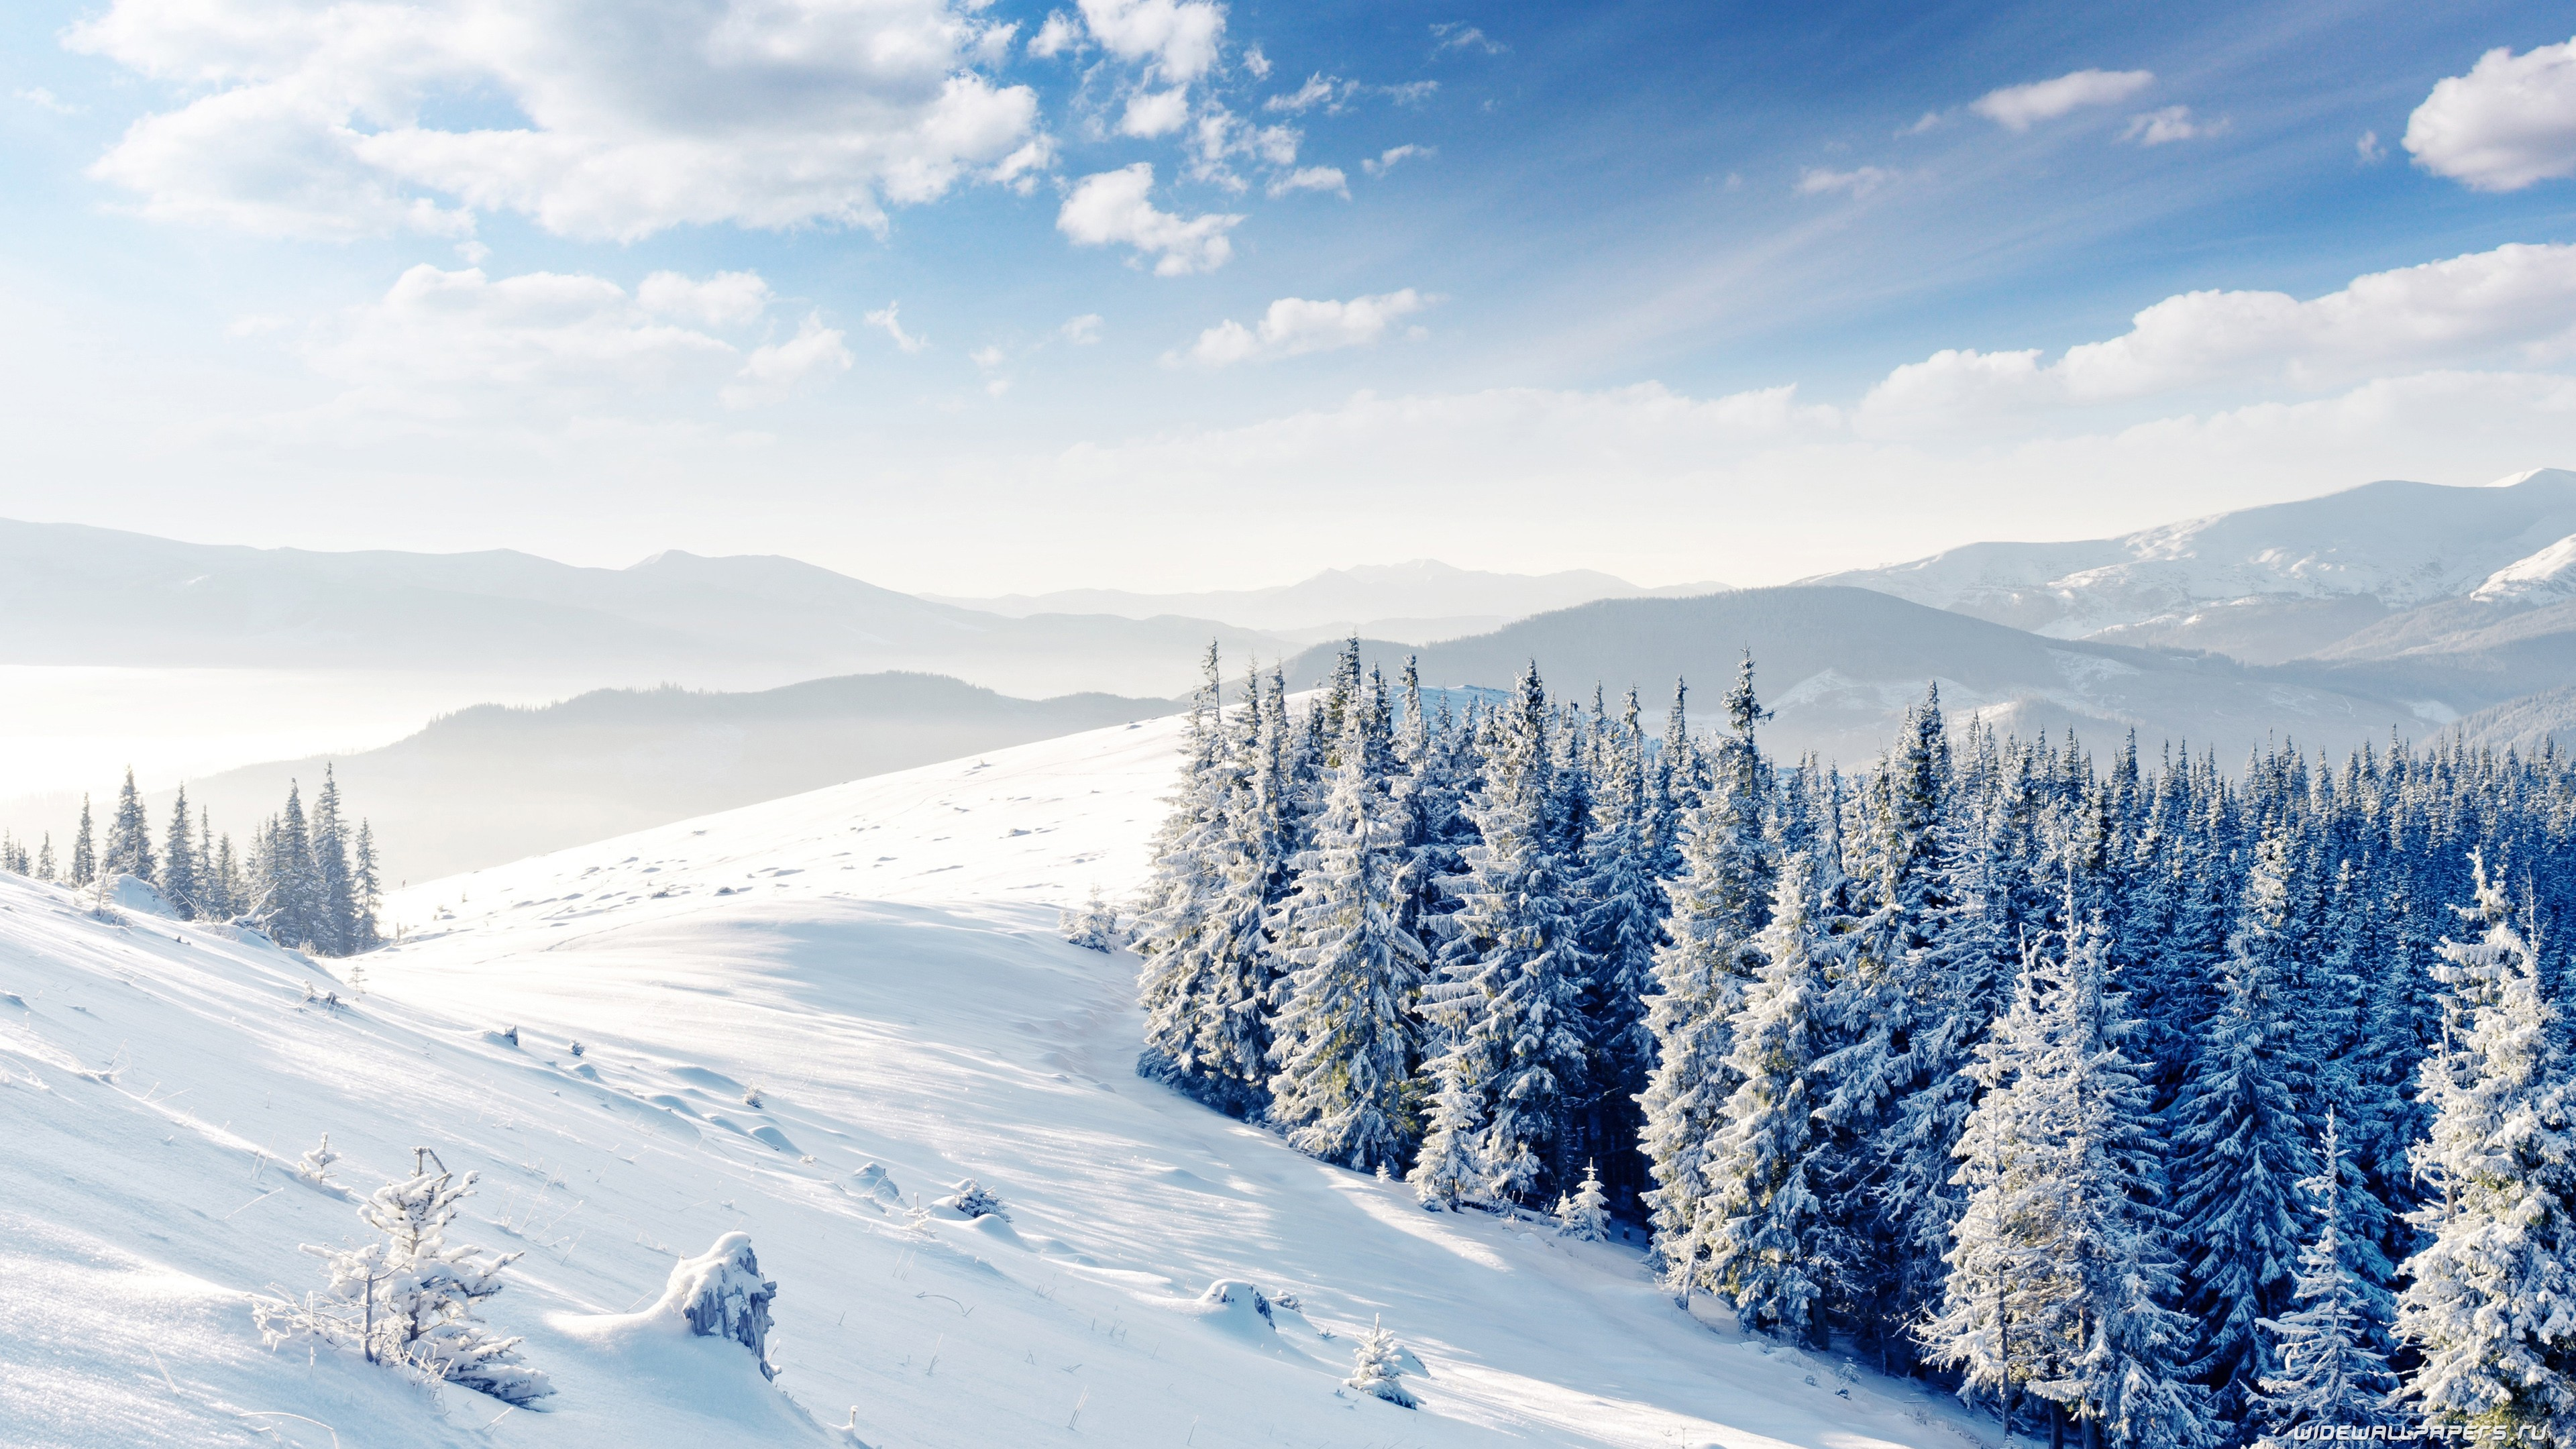 4k Nature Wallpaper Winter France: Wallpaper Mountains, Forest, Trees, Snow, Winter, 4k